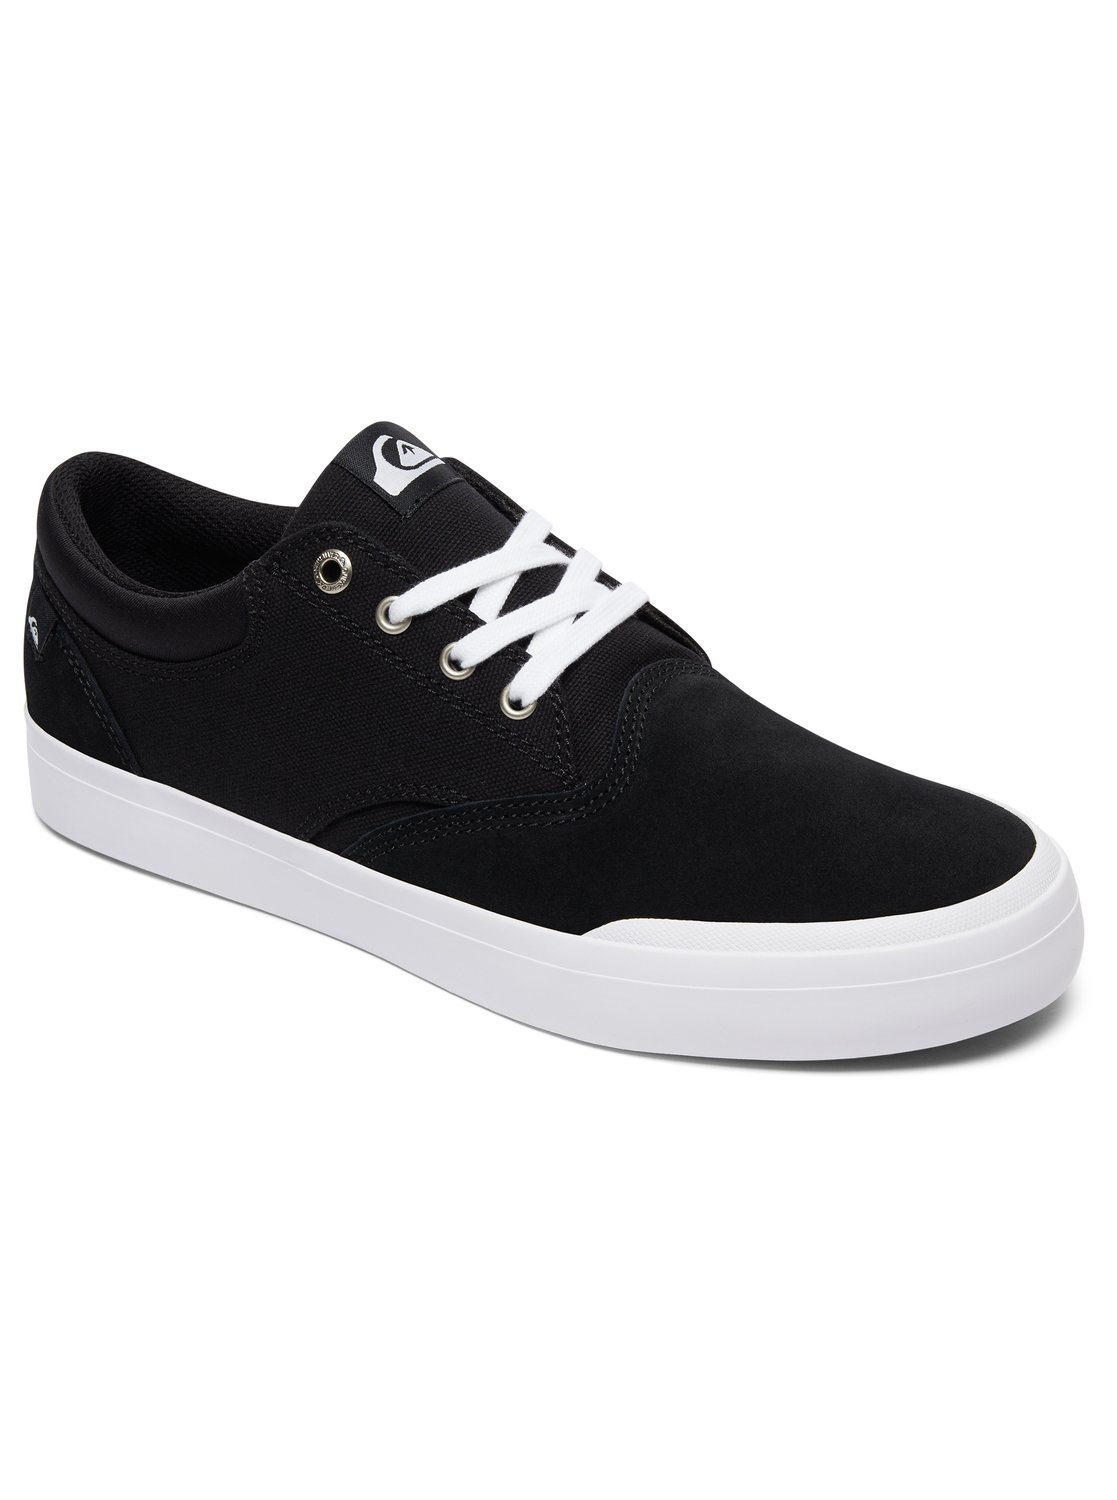 VERANT - Sneaker high - black/black/white btJCO